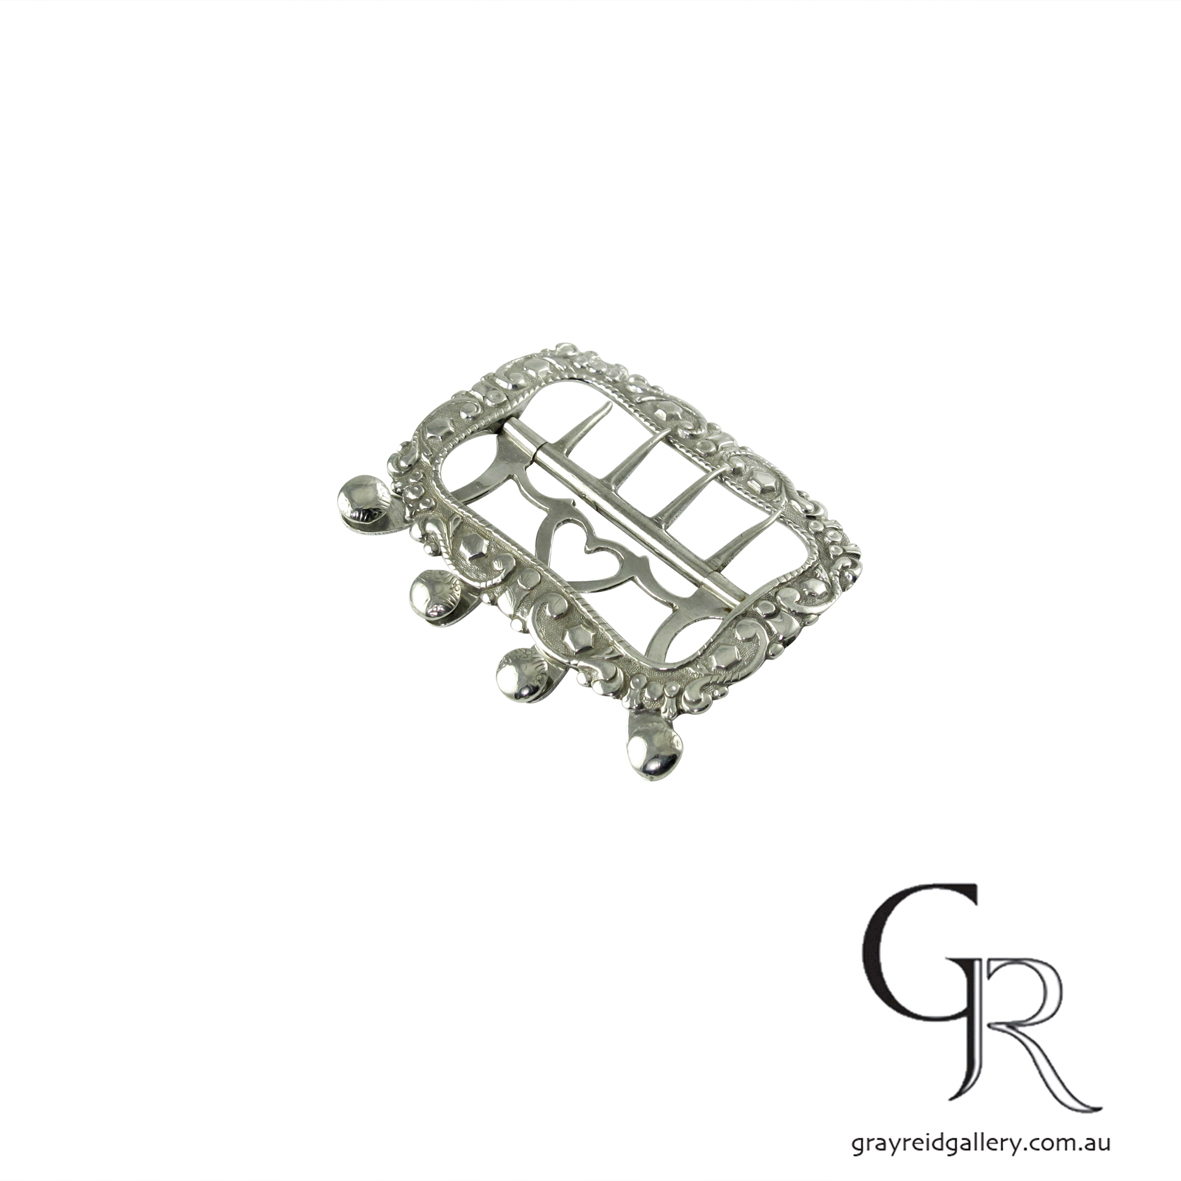 antiques and collectables melbourne sterling silver belt buckle Gray Reid Gallery 11.jpg